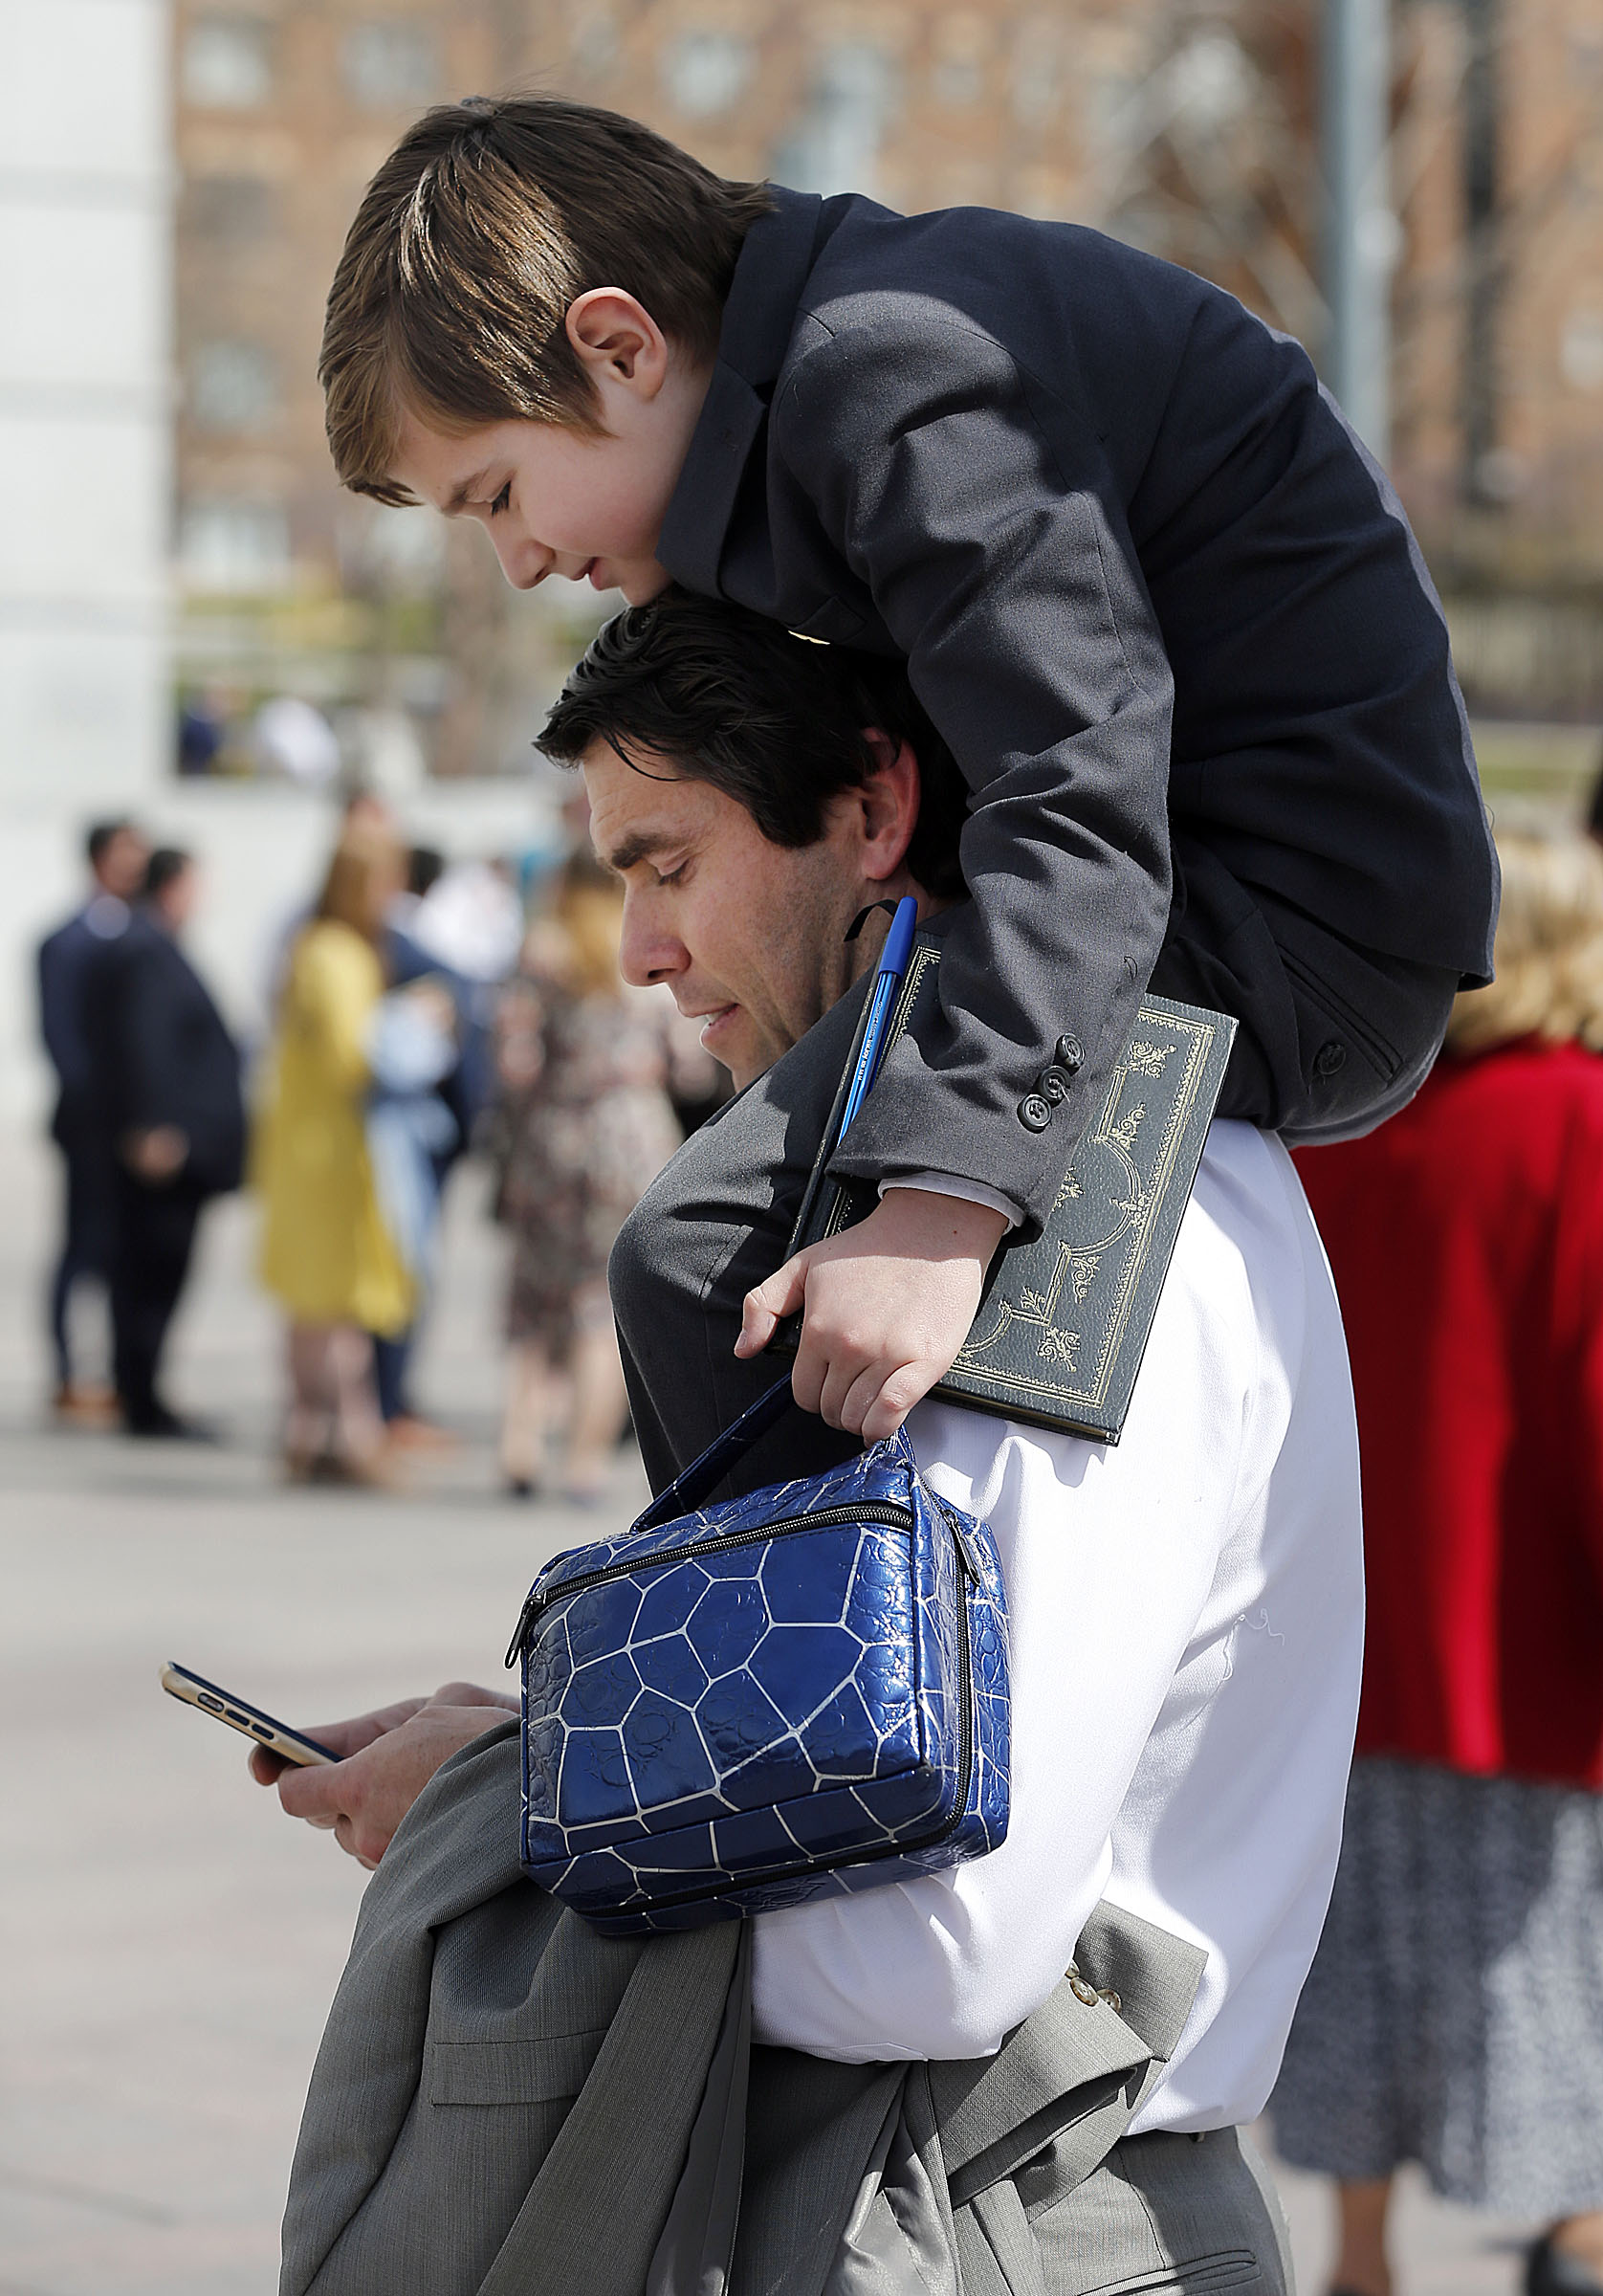 Joey O'Loughlin and his son Joseph Michael O'Loughlin wait outside the Conference Center following the Saturday morning session of the Church's 188th Annual General Conference in Salt Lake City on Saturday, March 31, 2018.